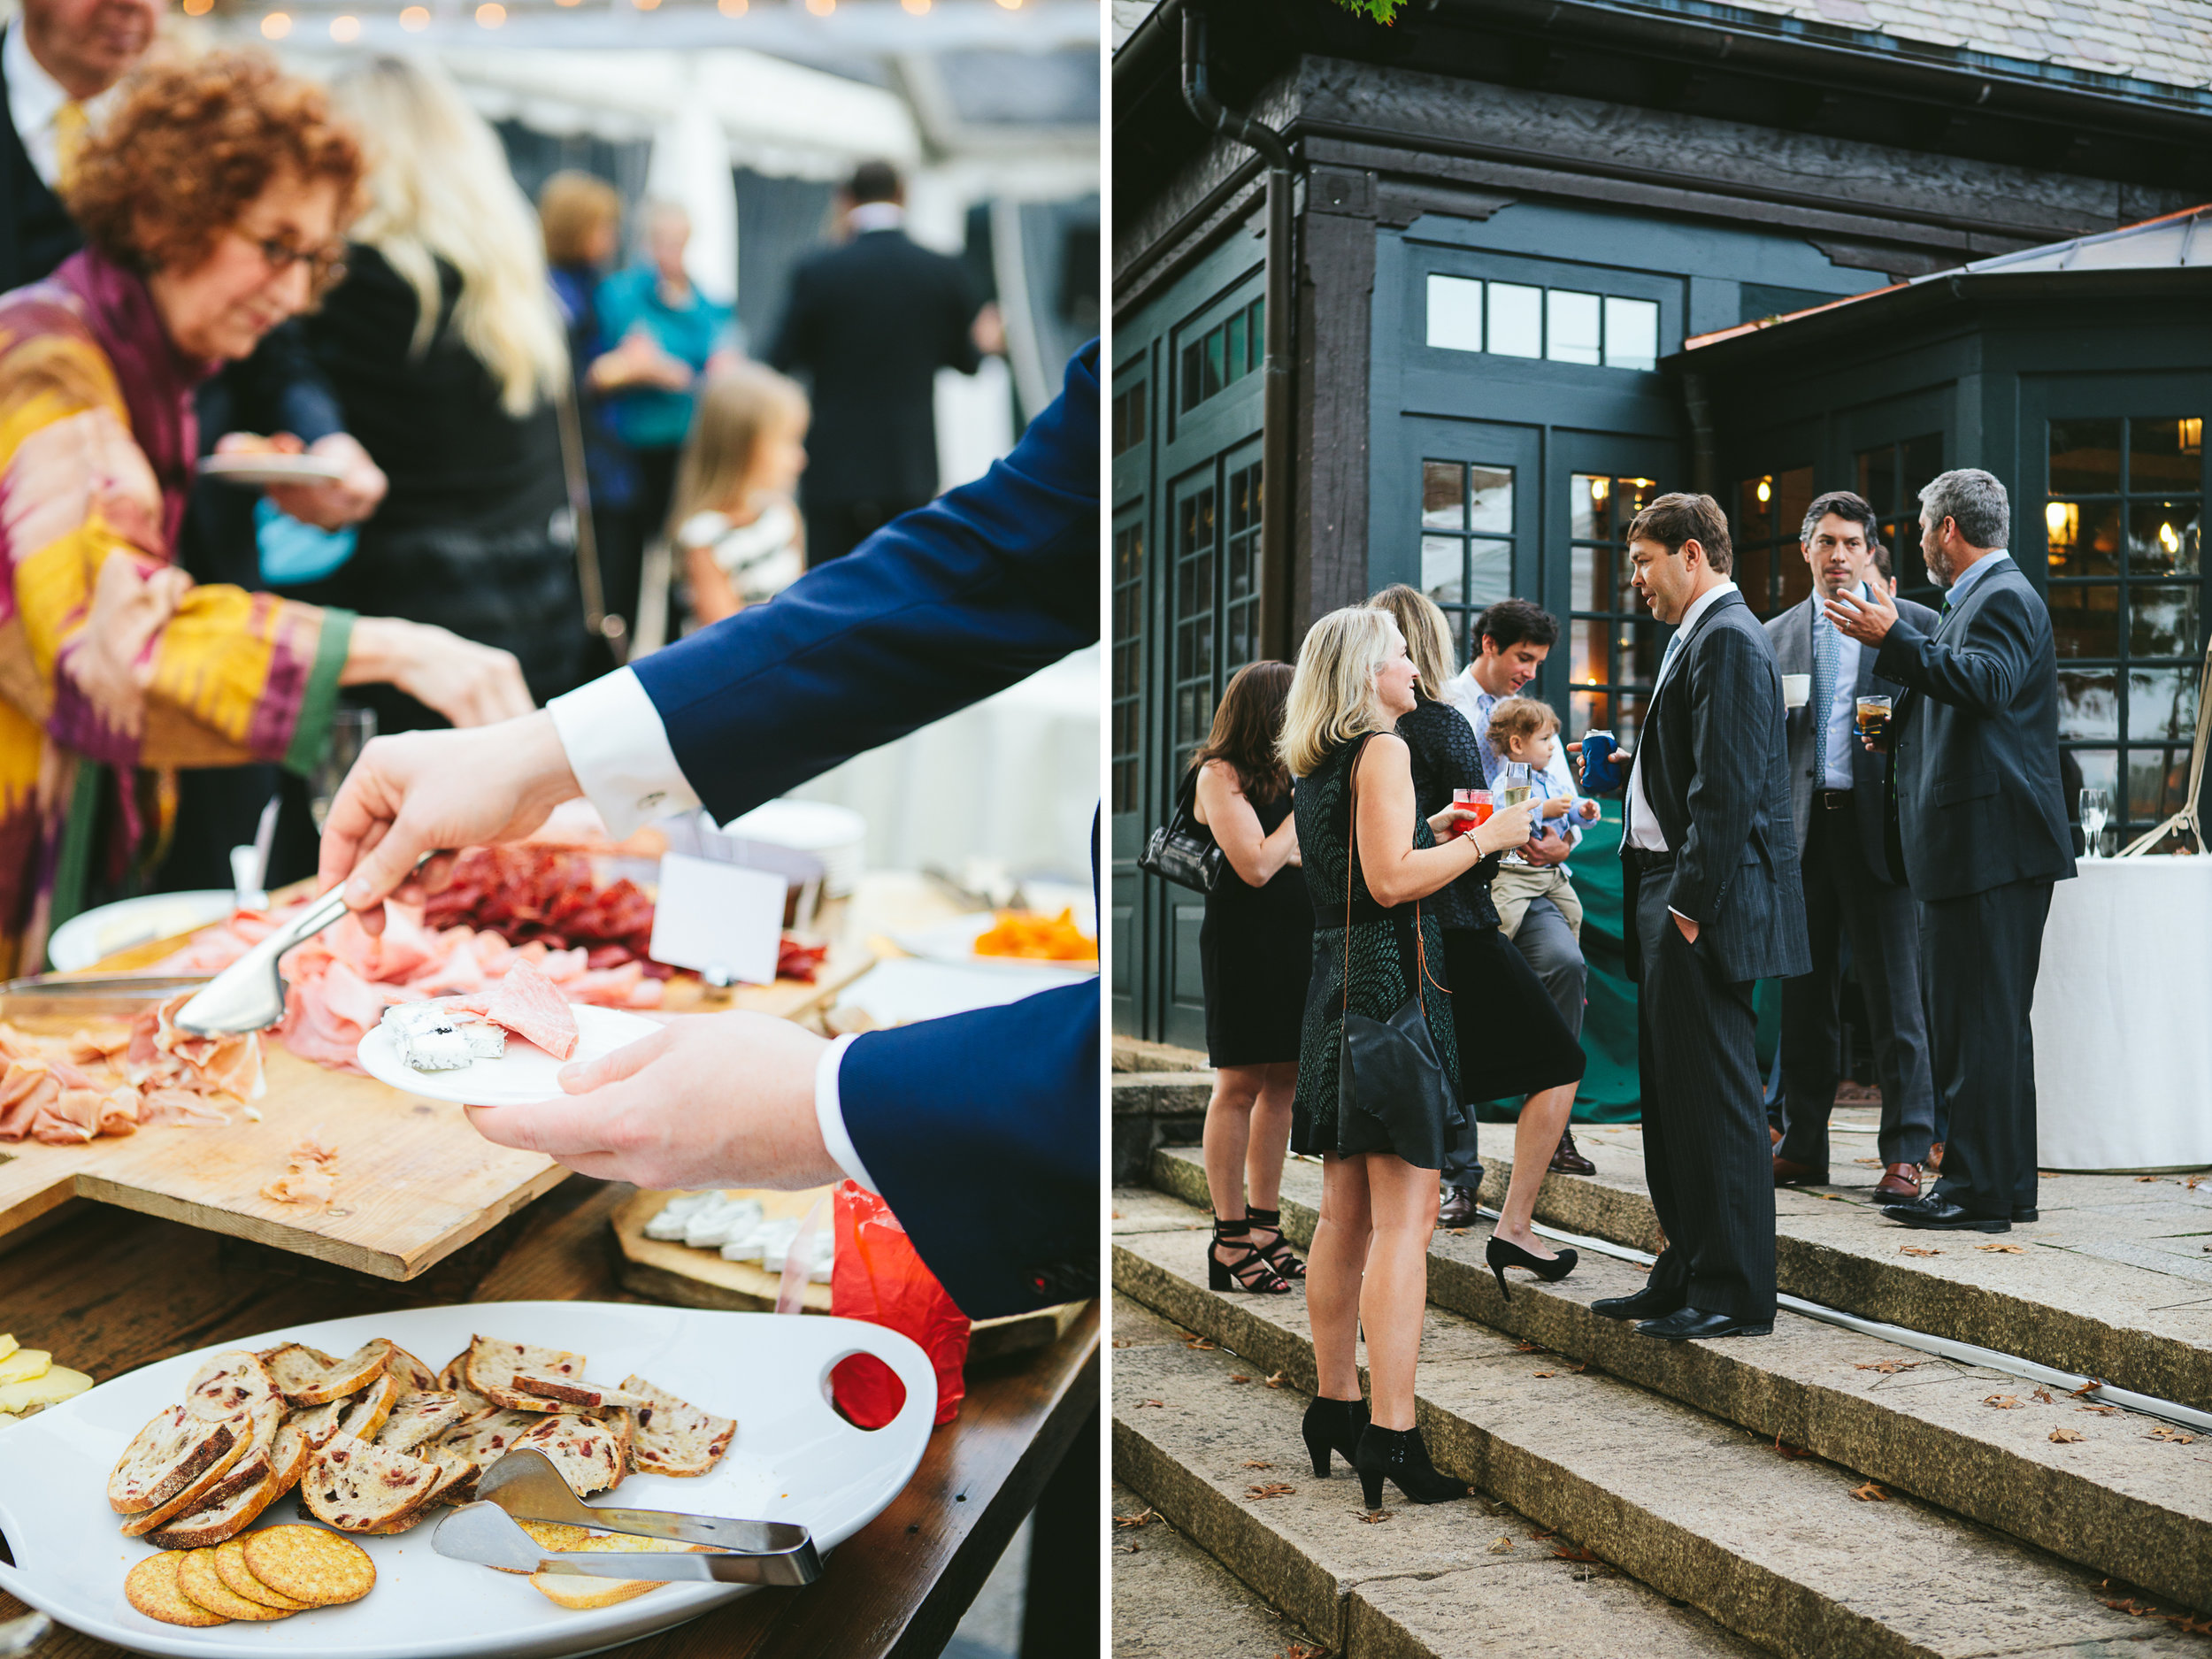 asheville-wedding-catering-1.jpg